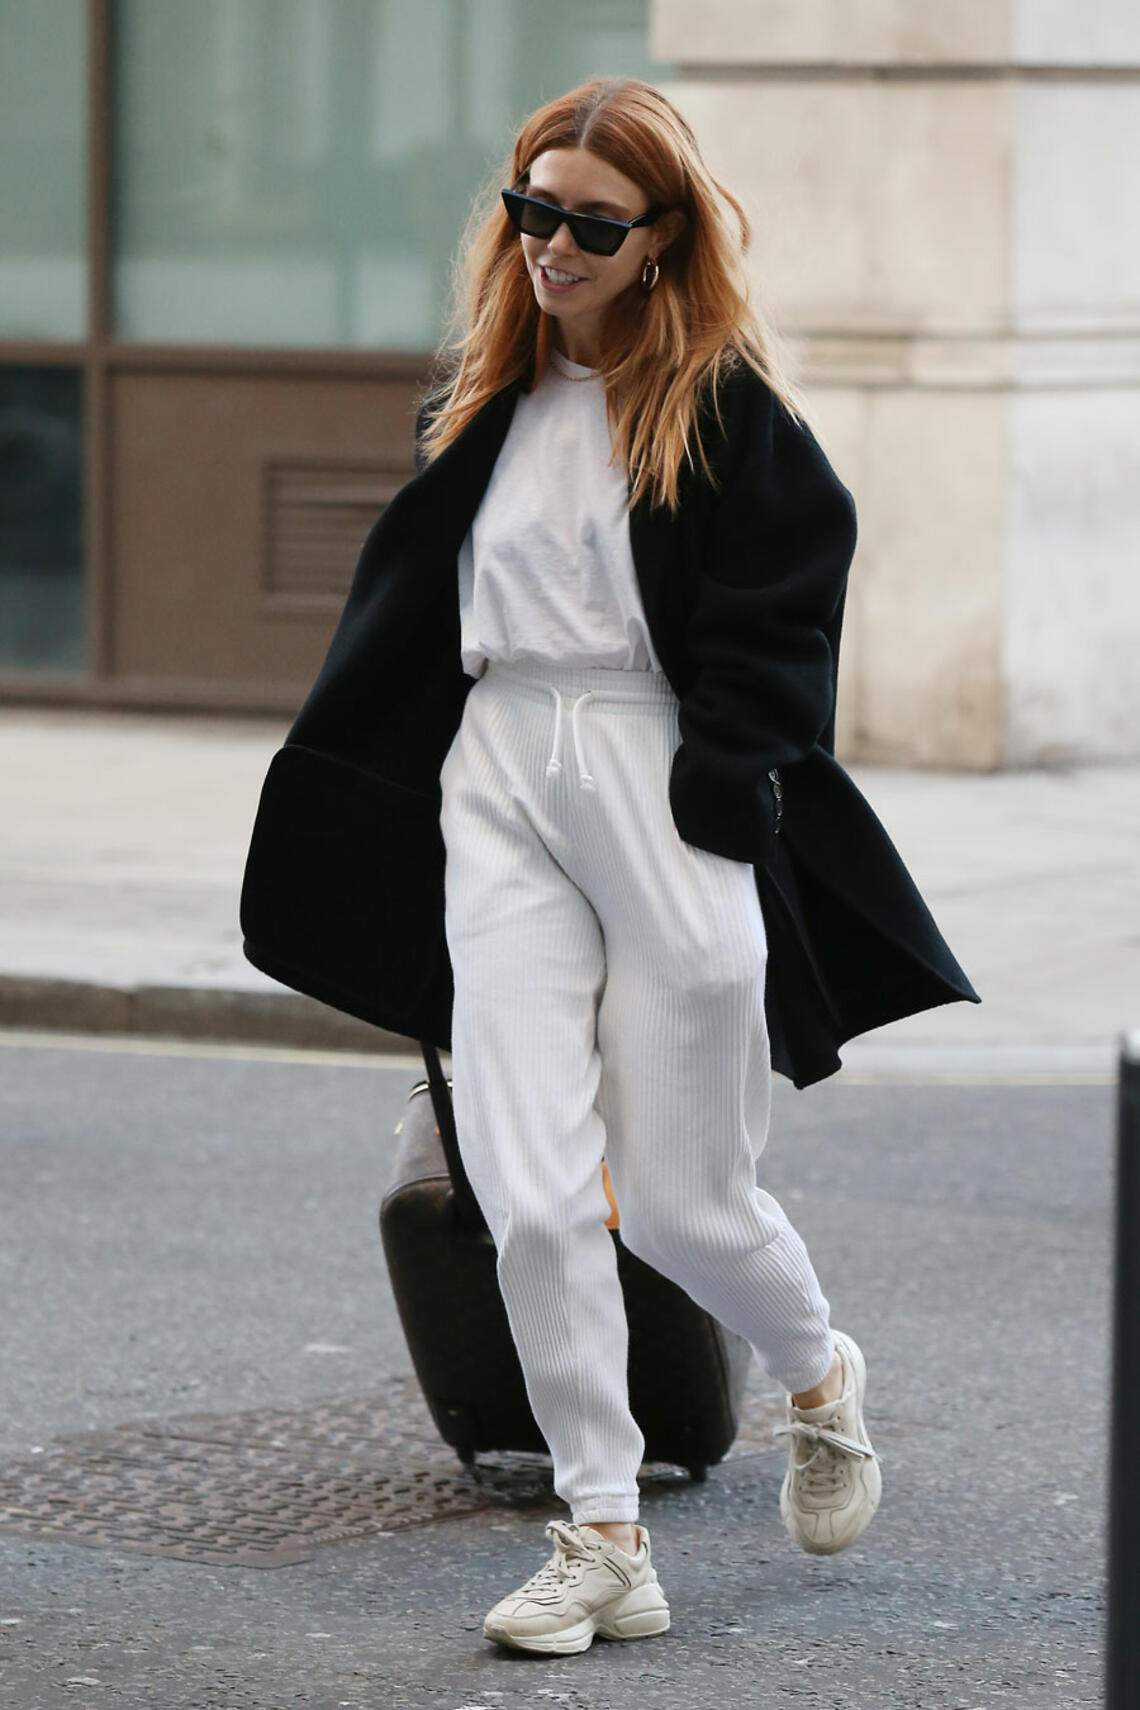 Stacey Dooley Christmas Outfit